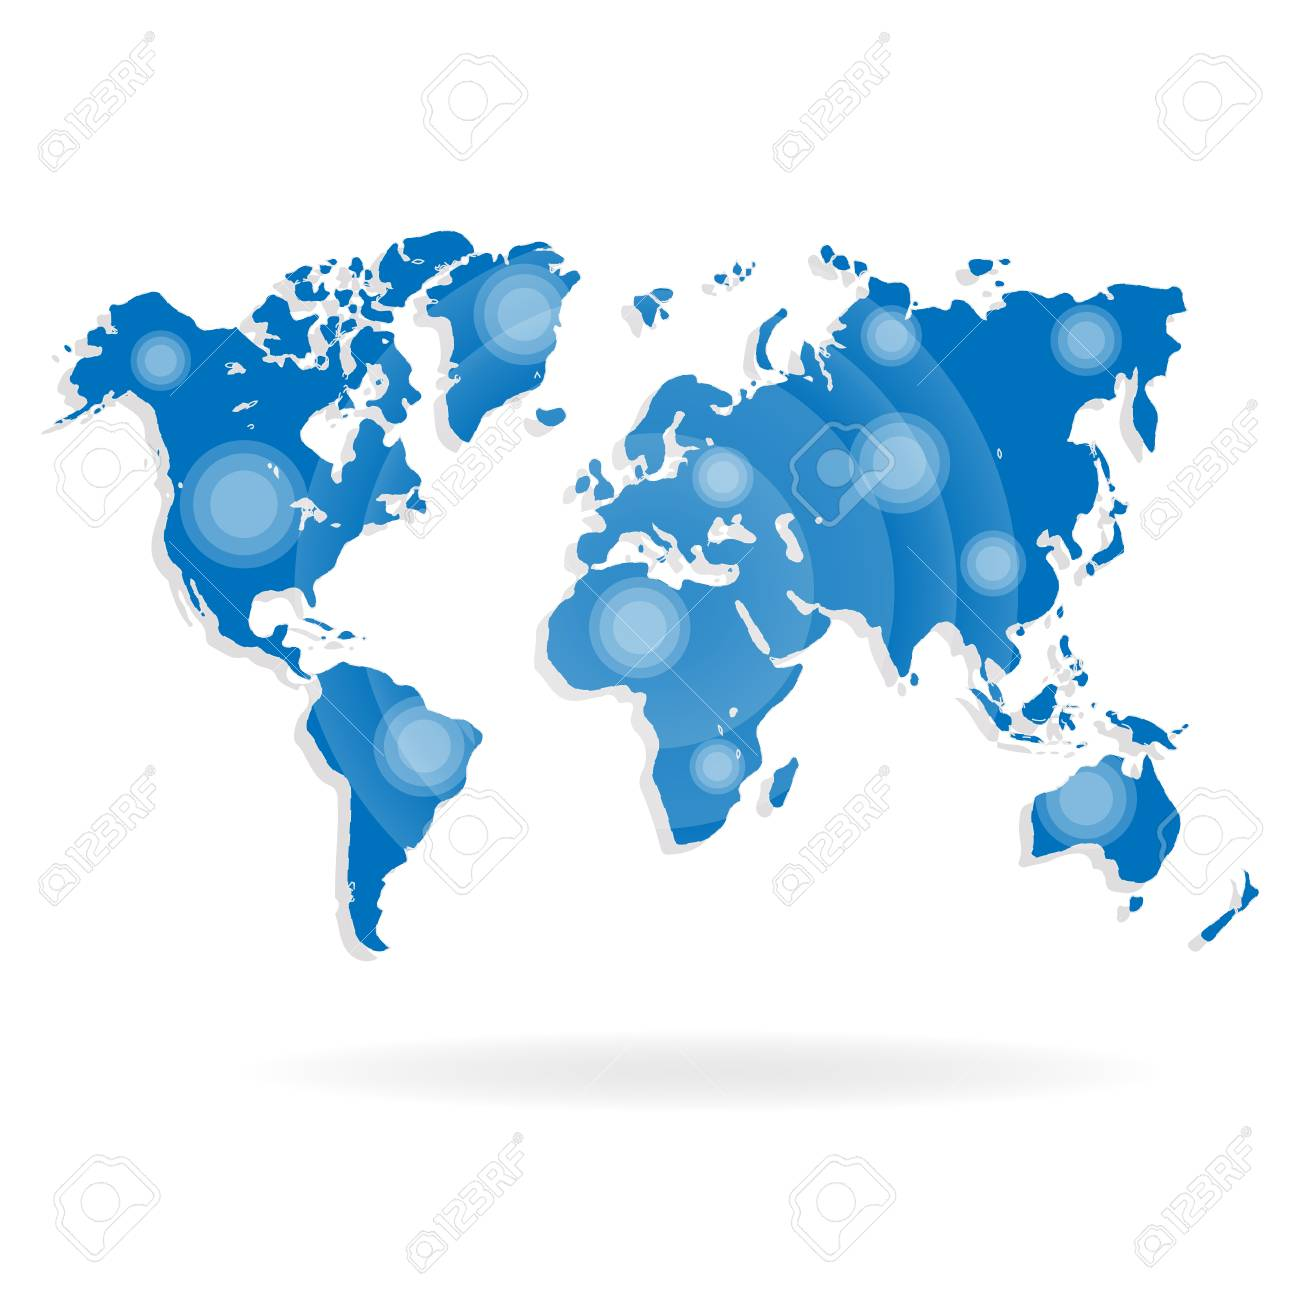 World map for website on a white background royalty free cliparts vector world map for website on a white background gumiabroncs Gallery